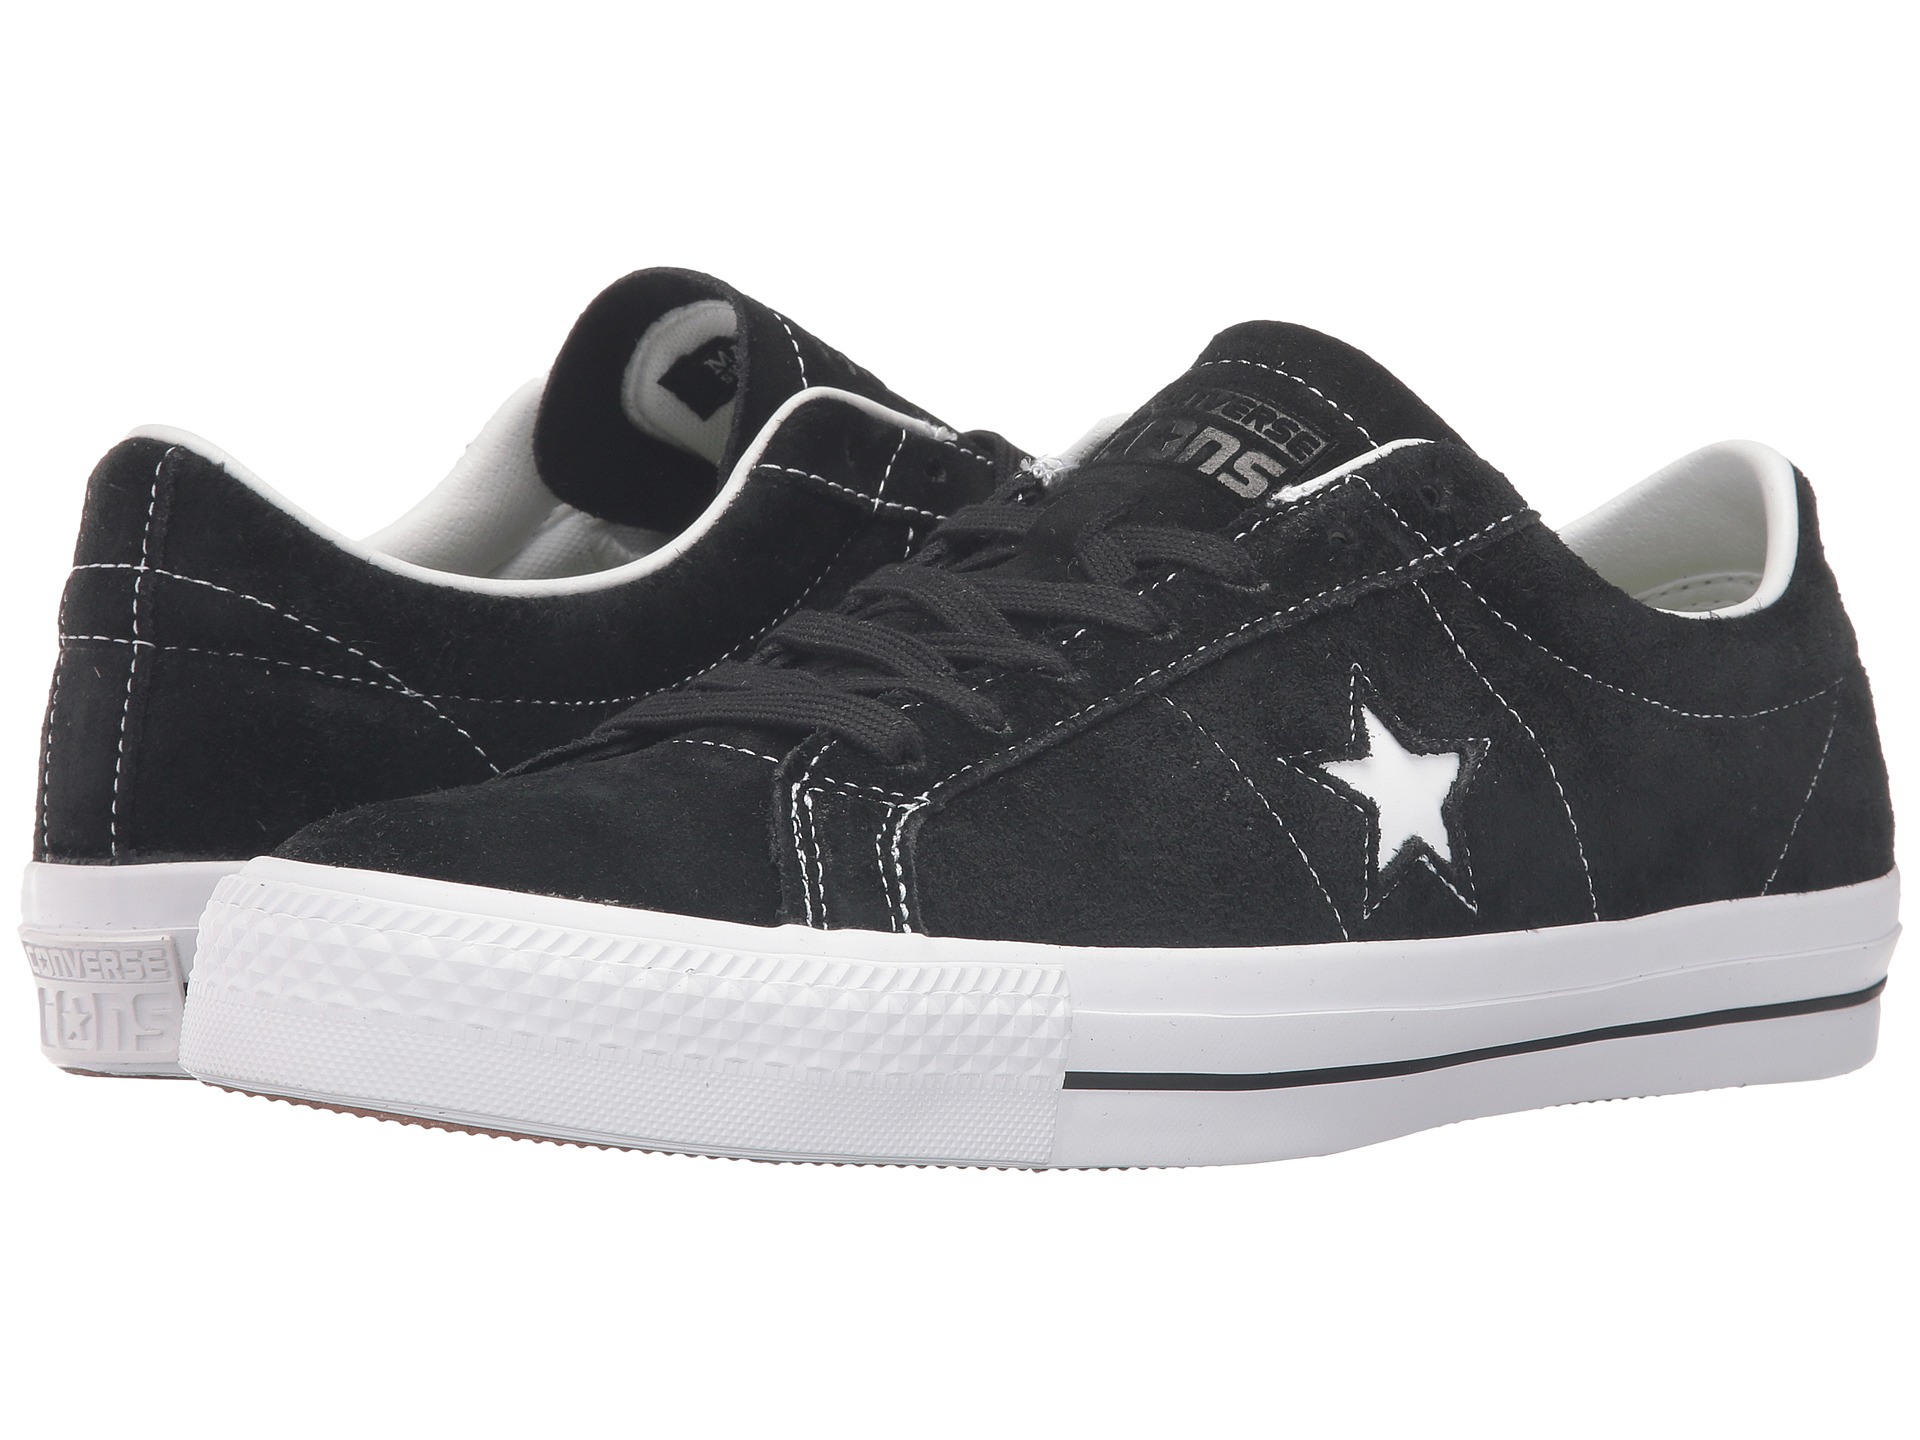 Converse all star suede sneakers